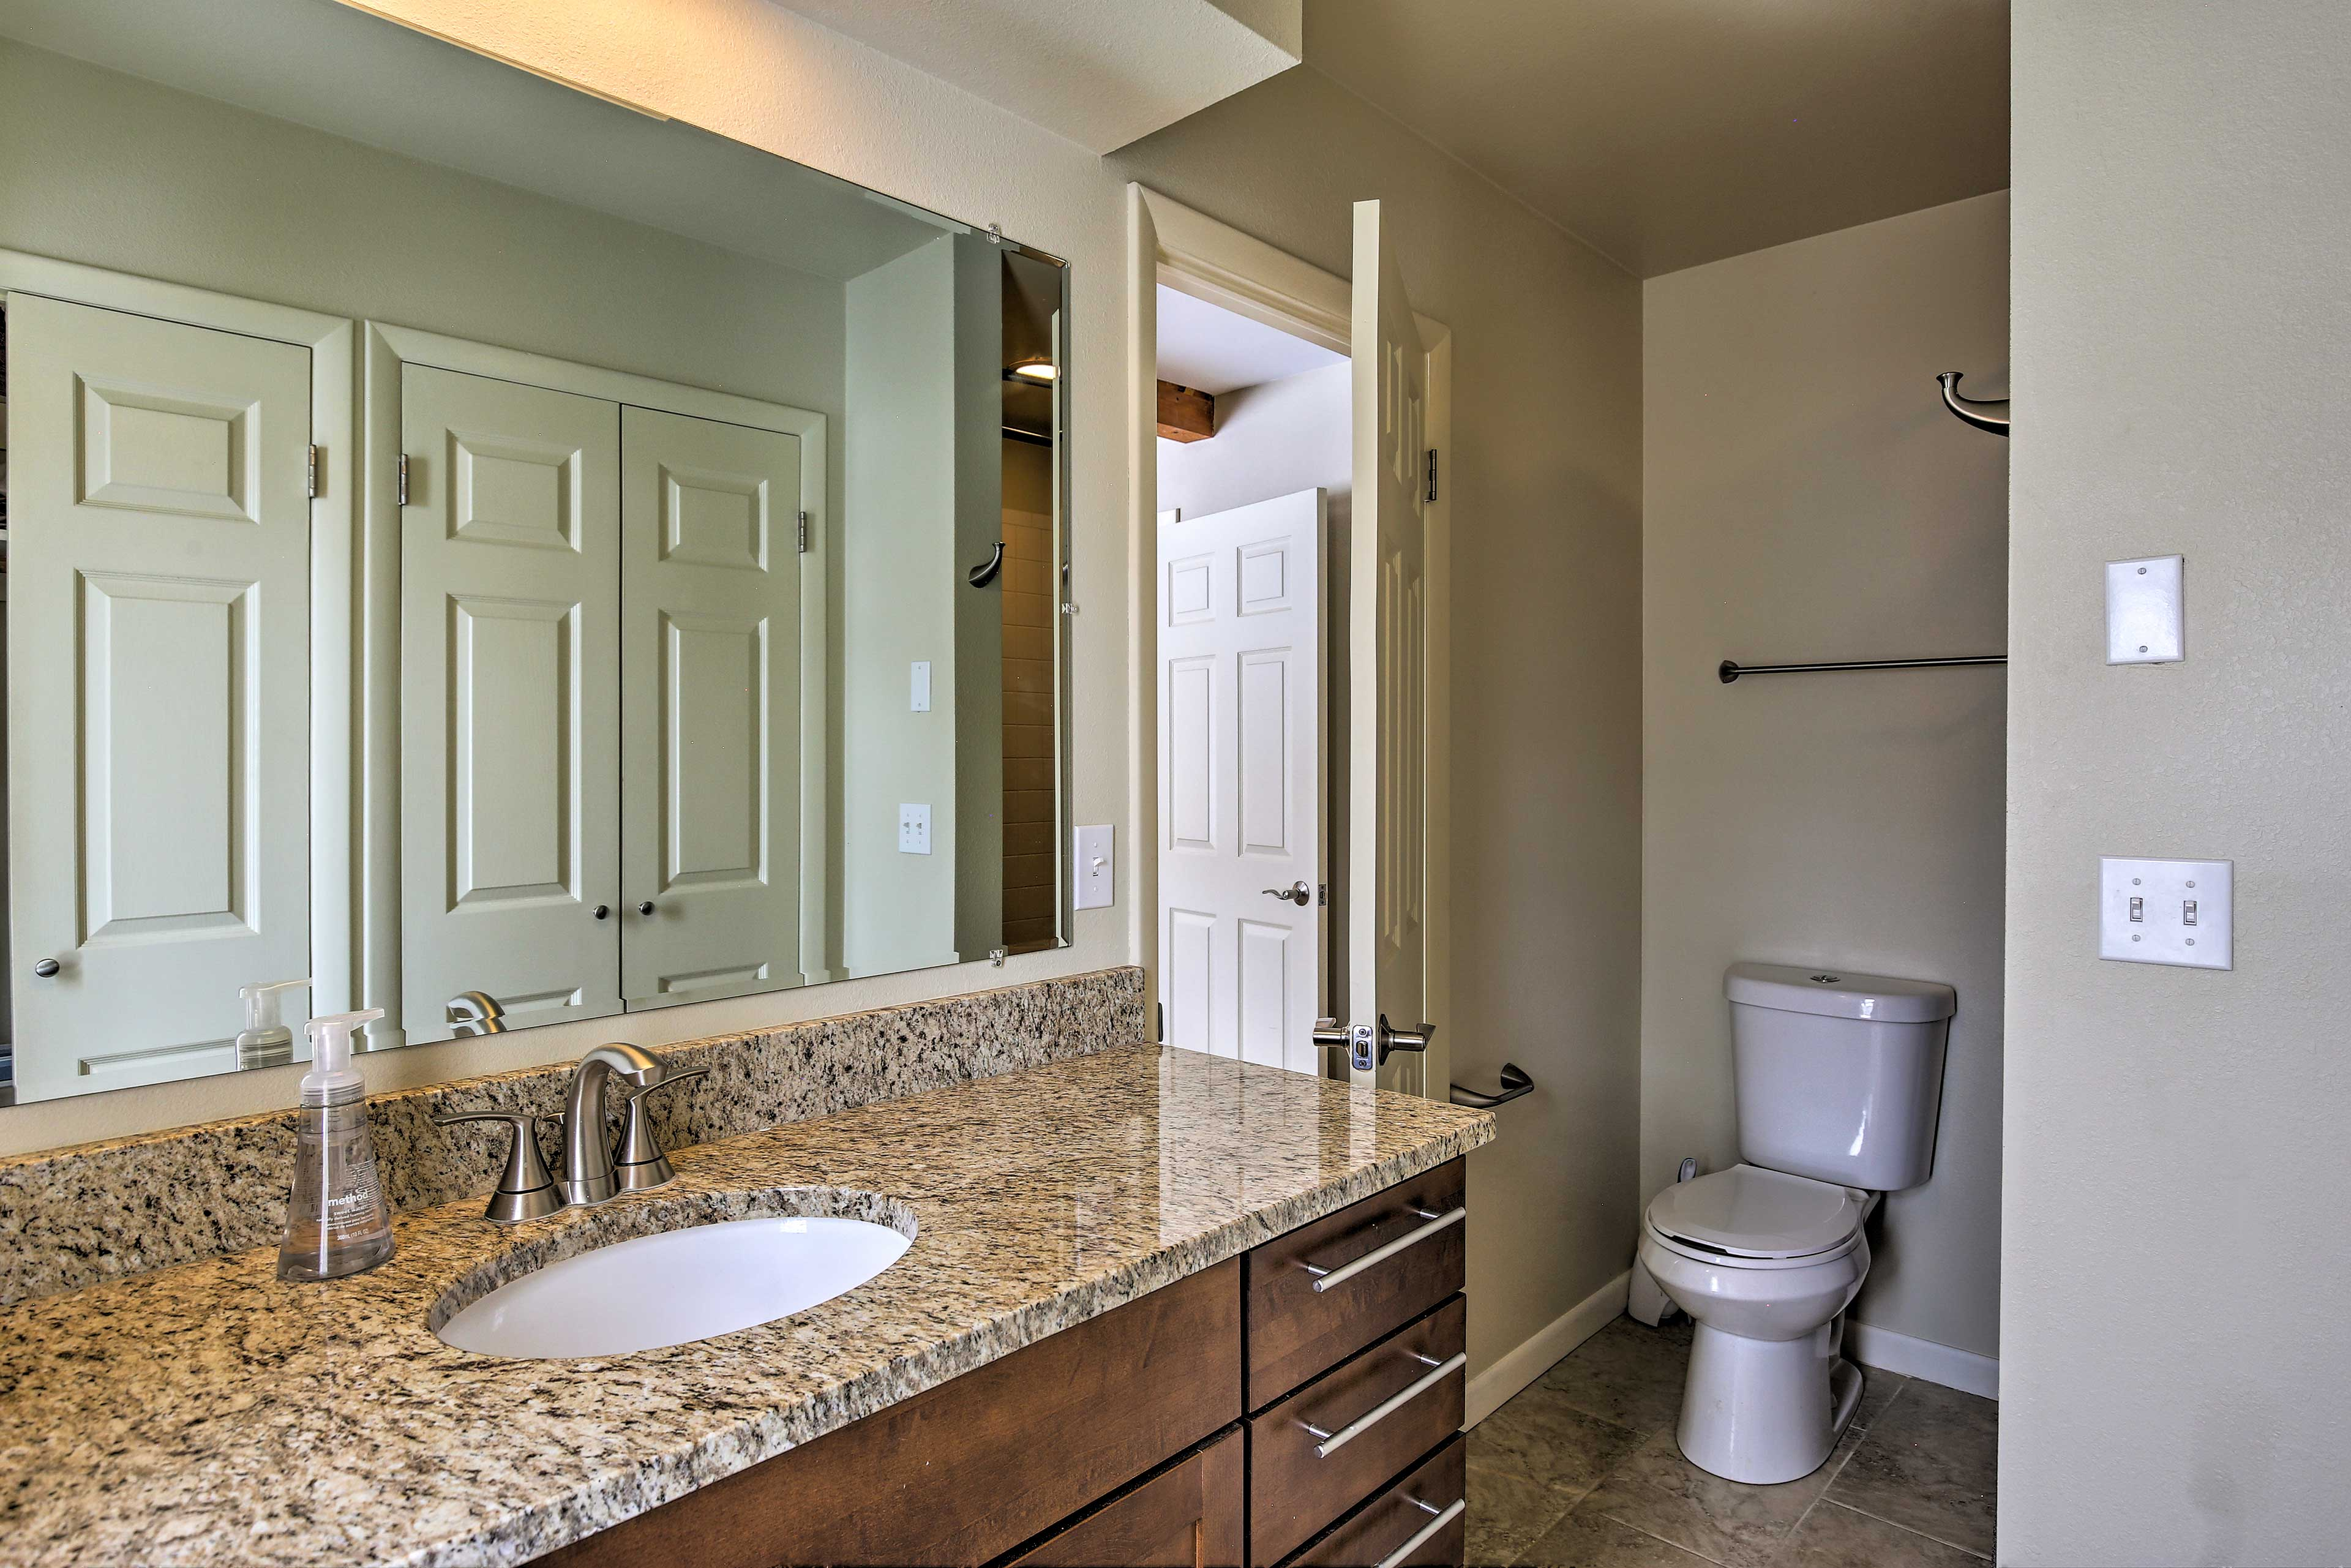 Closet storage is available in the bathroom.